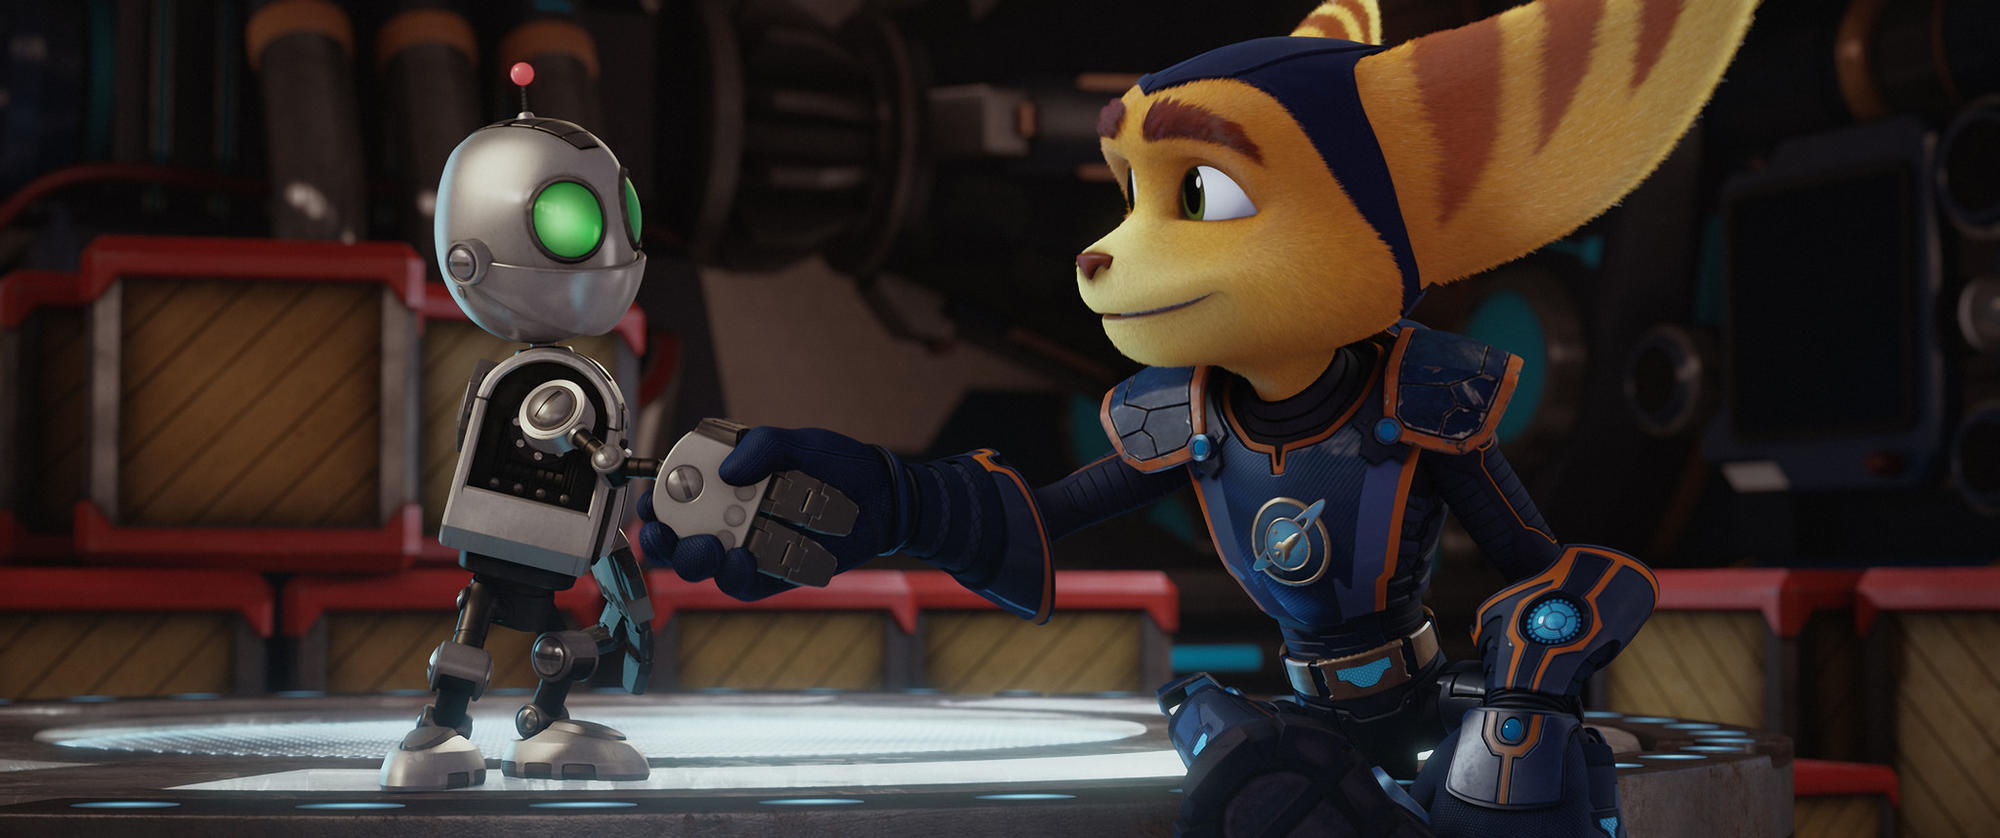 David Kaye stars as the voice of Clank, left, and James Arnold Taylor stars as the voice of Ratchet in